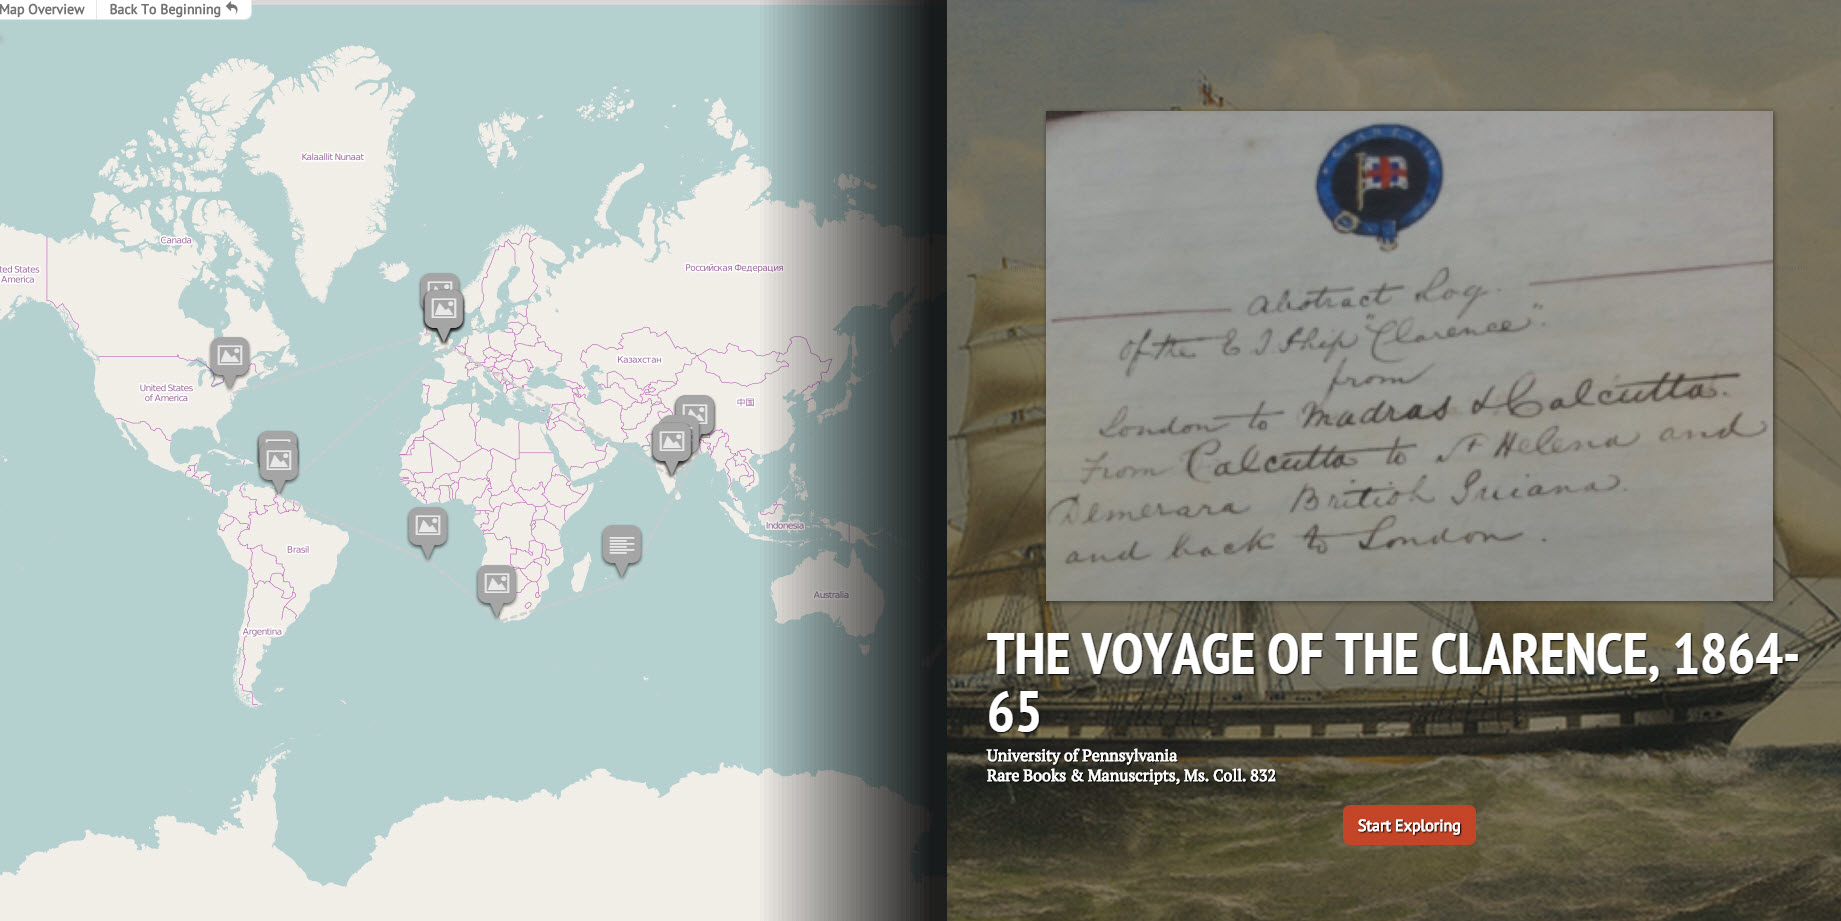 Voyage of the Clarence